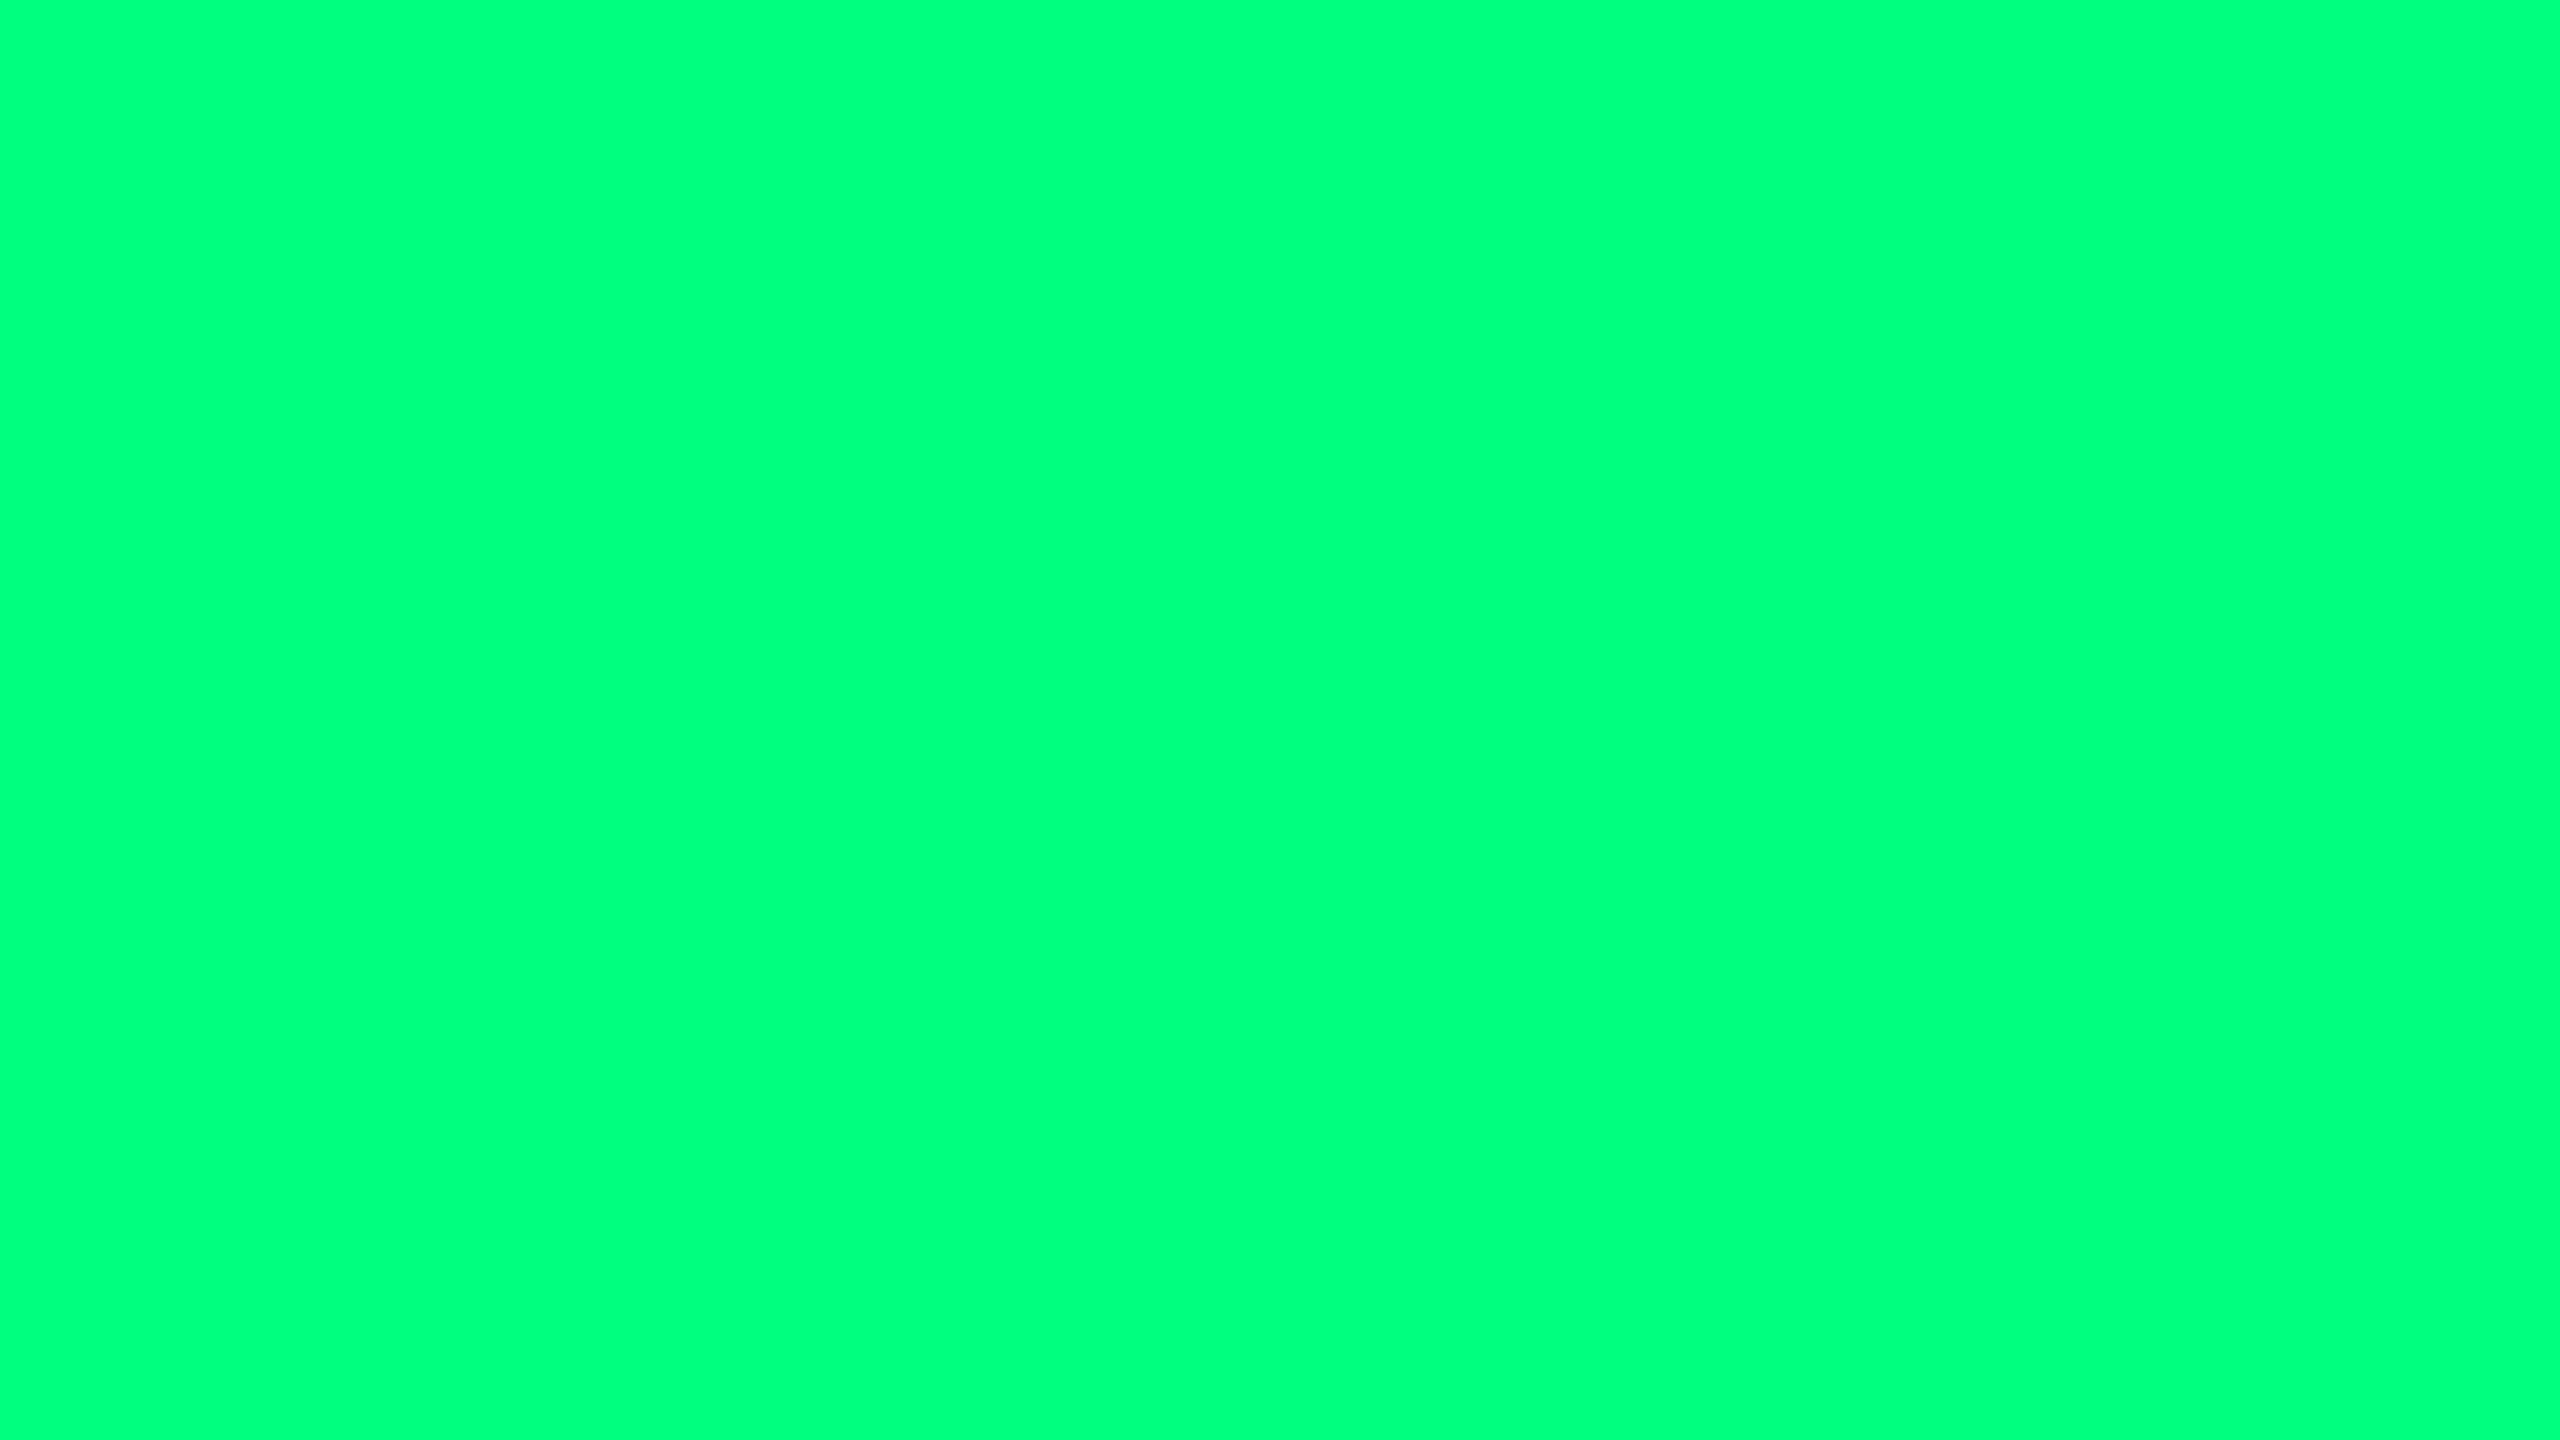 2560x1440 Spring Green Solid Color Background